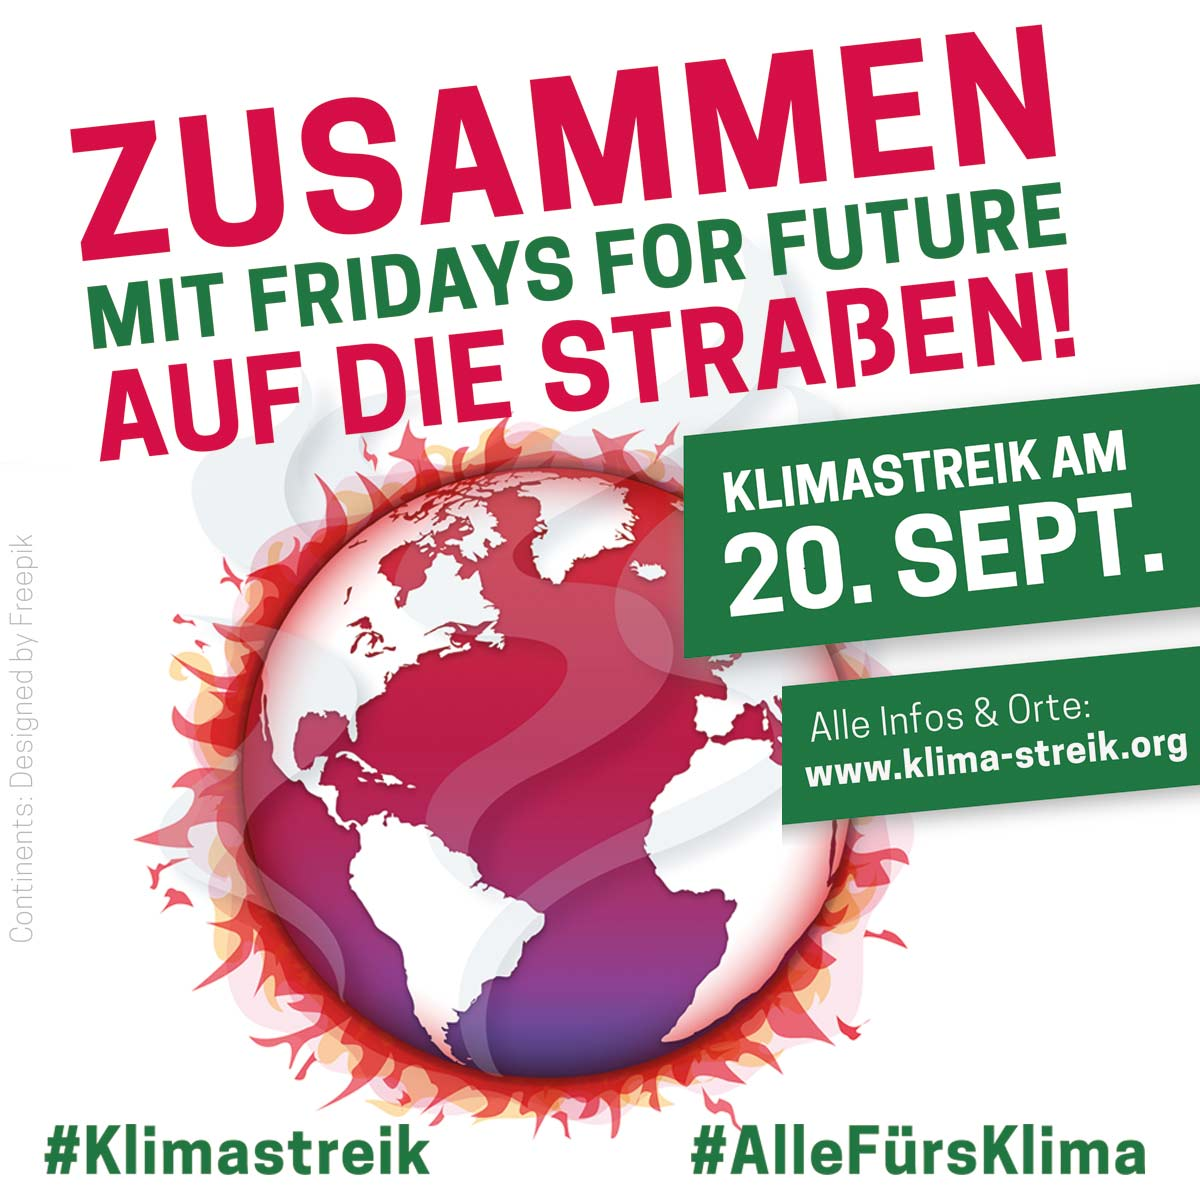 globaler Klimastreik am 20. September 2019